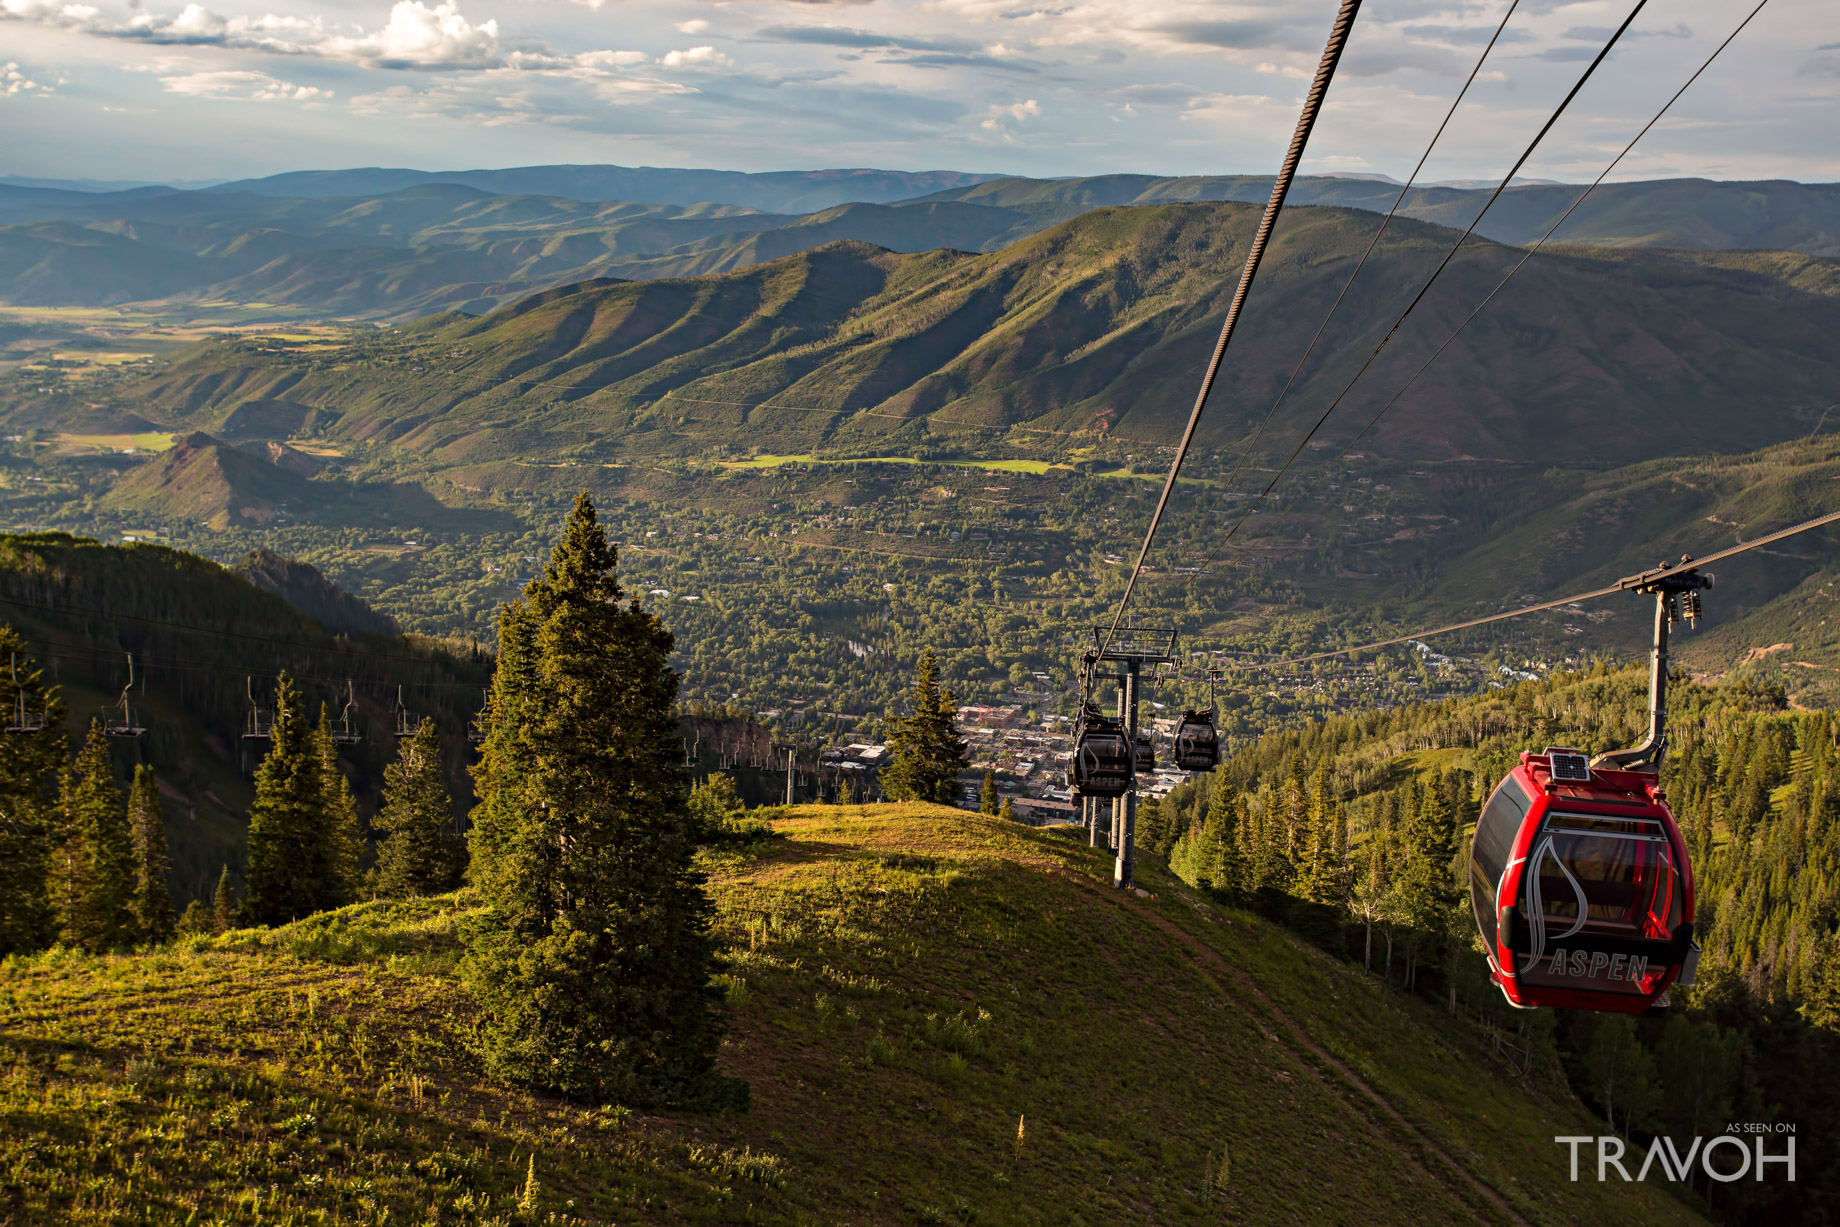 The Outdoor Activities - Top 7 Reasons Why You Should Vacation in Aspen, Colorado